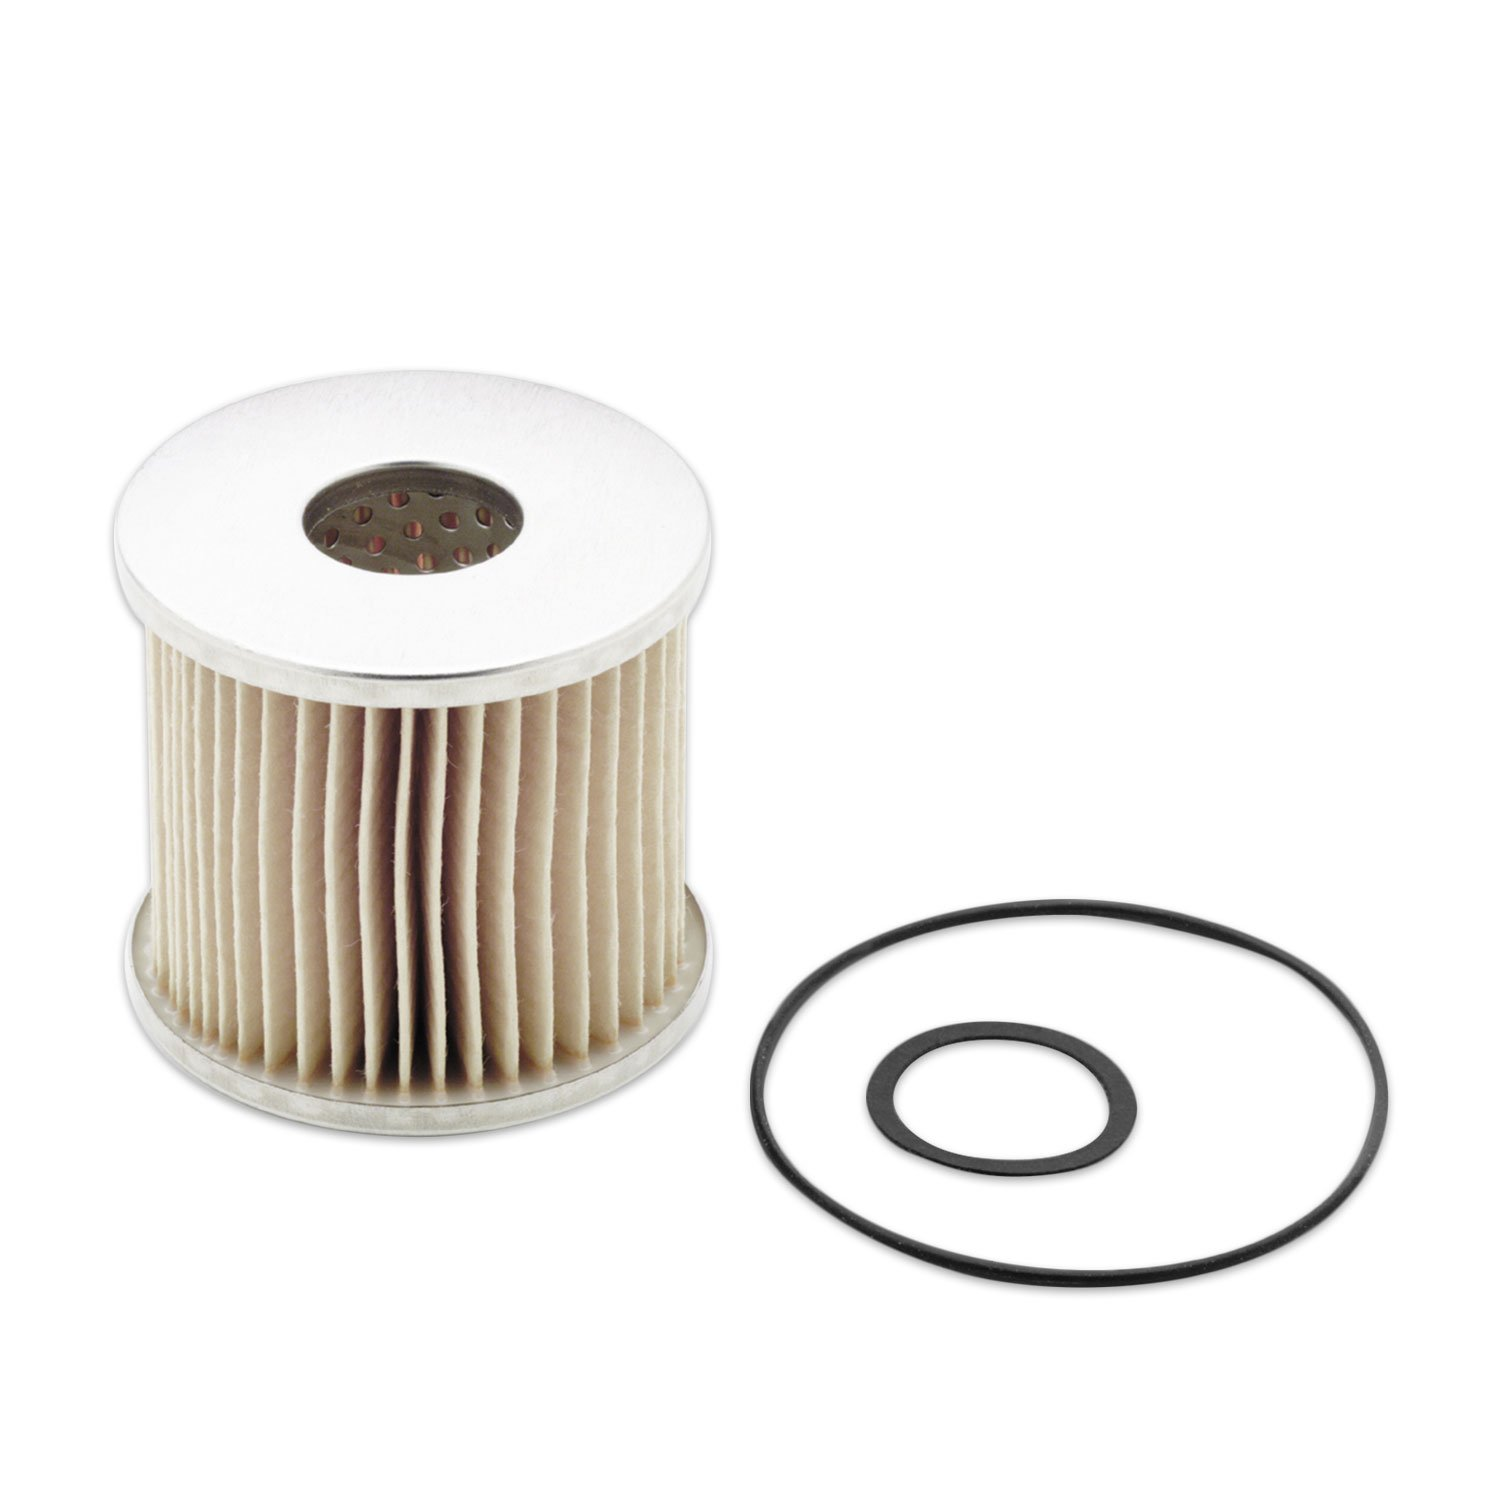 mallory fuel filters